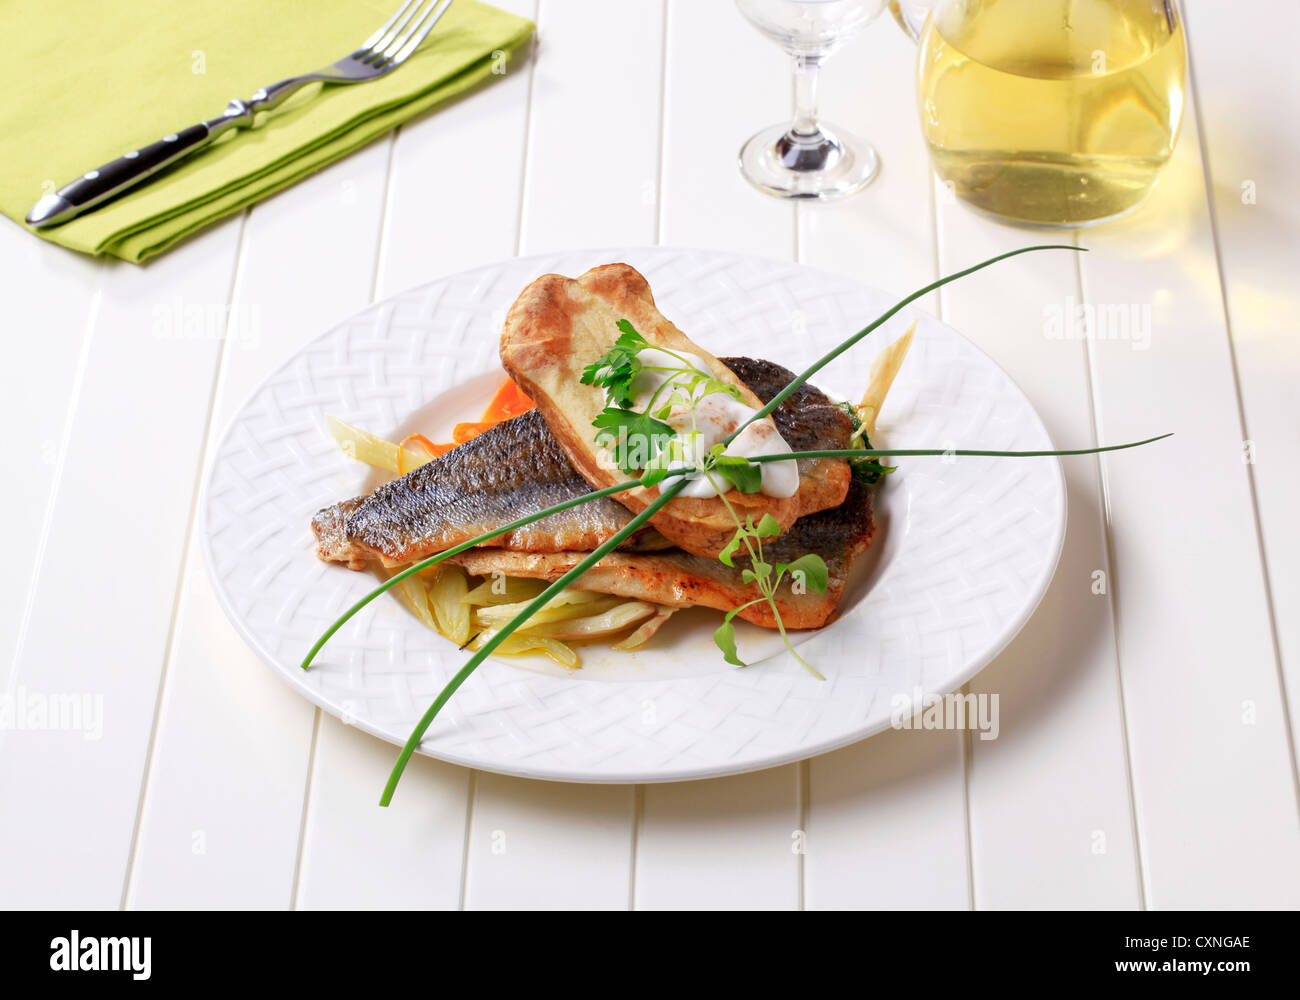 Pan fried fish fillets with baked potato and sauteed vegetable - Stock Image